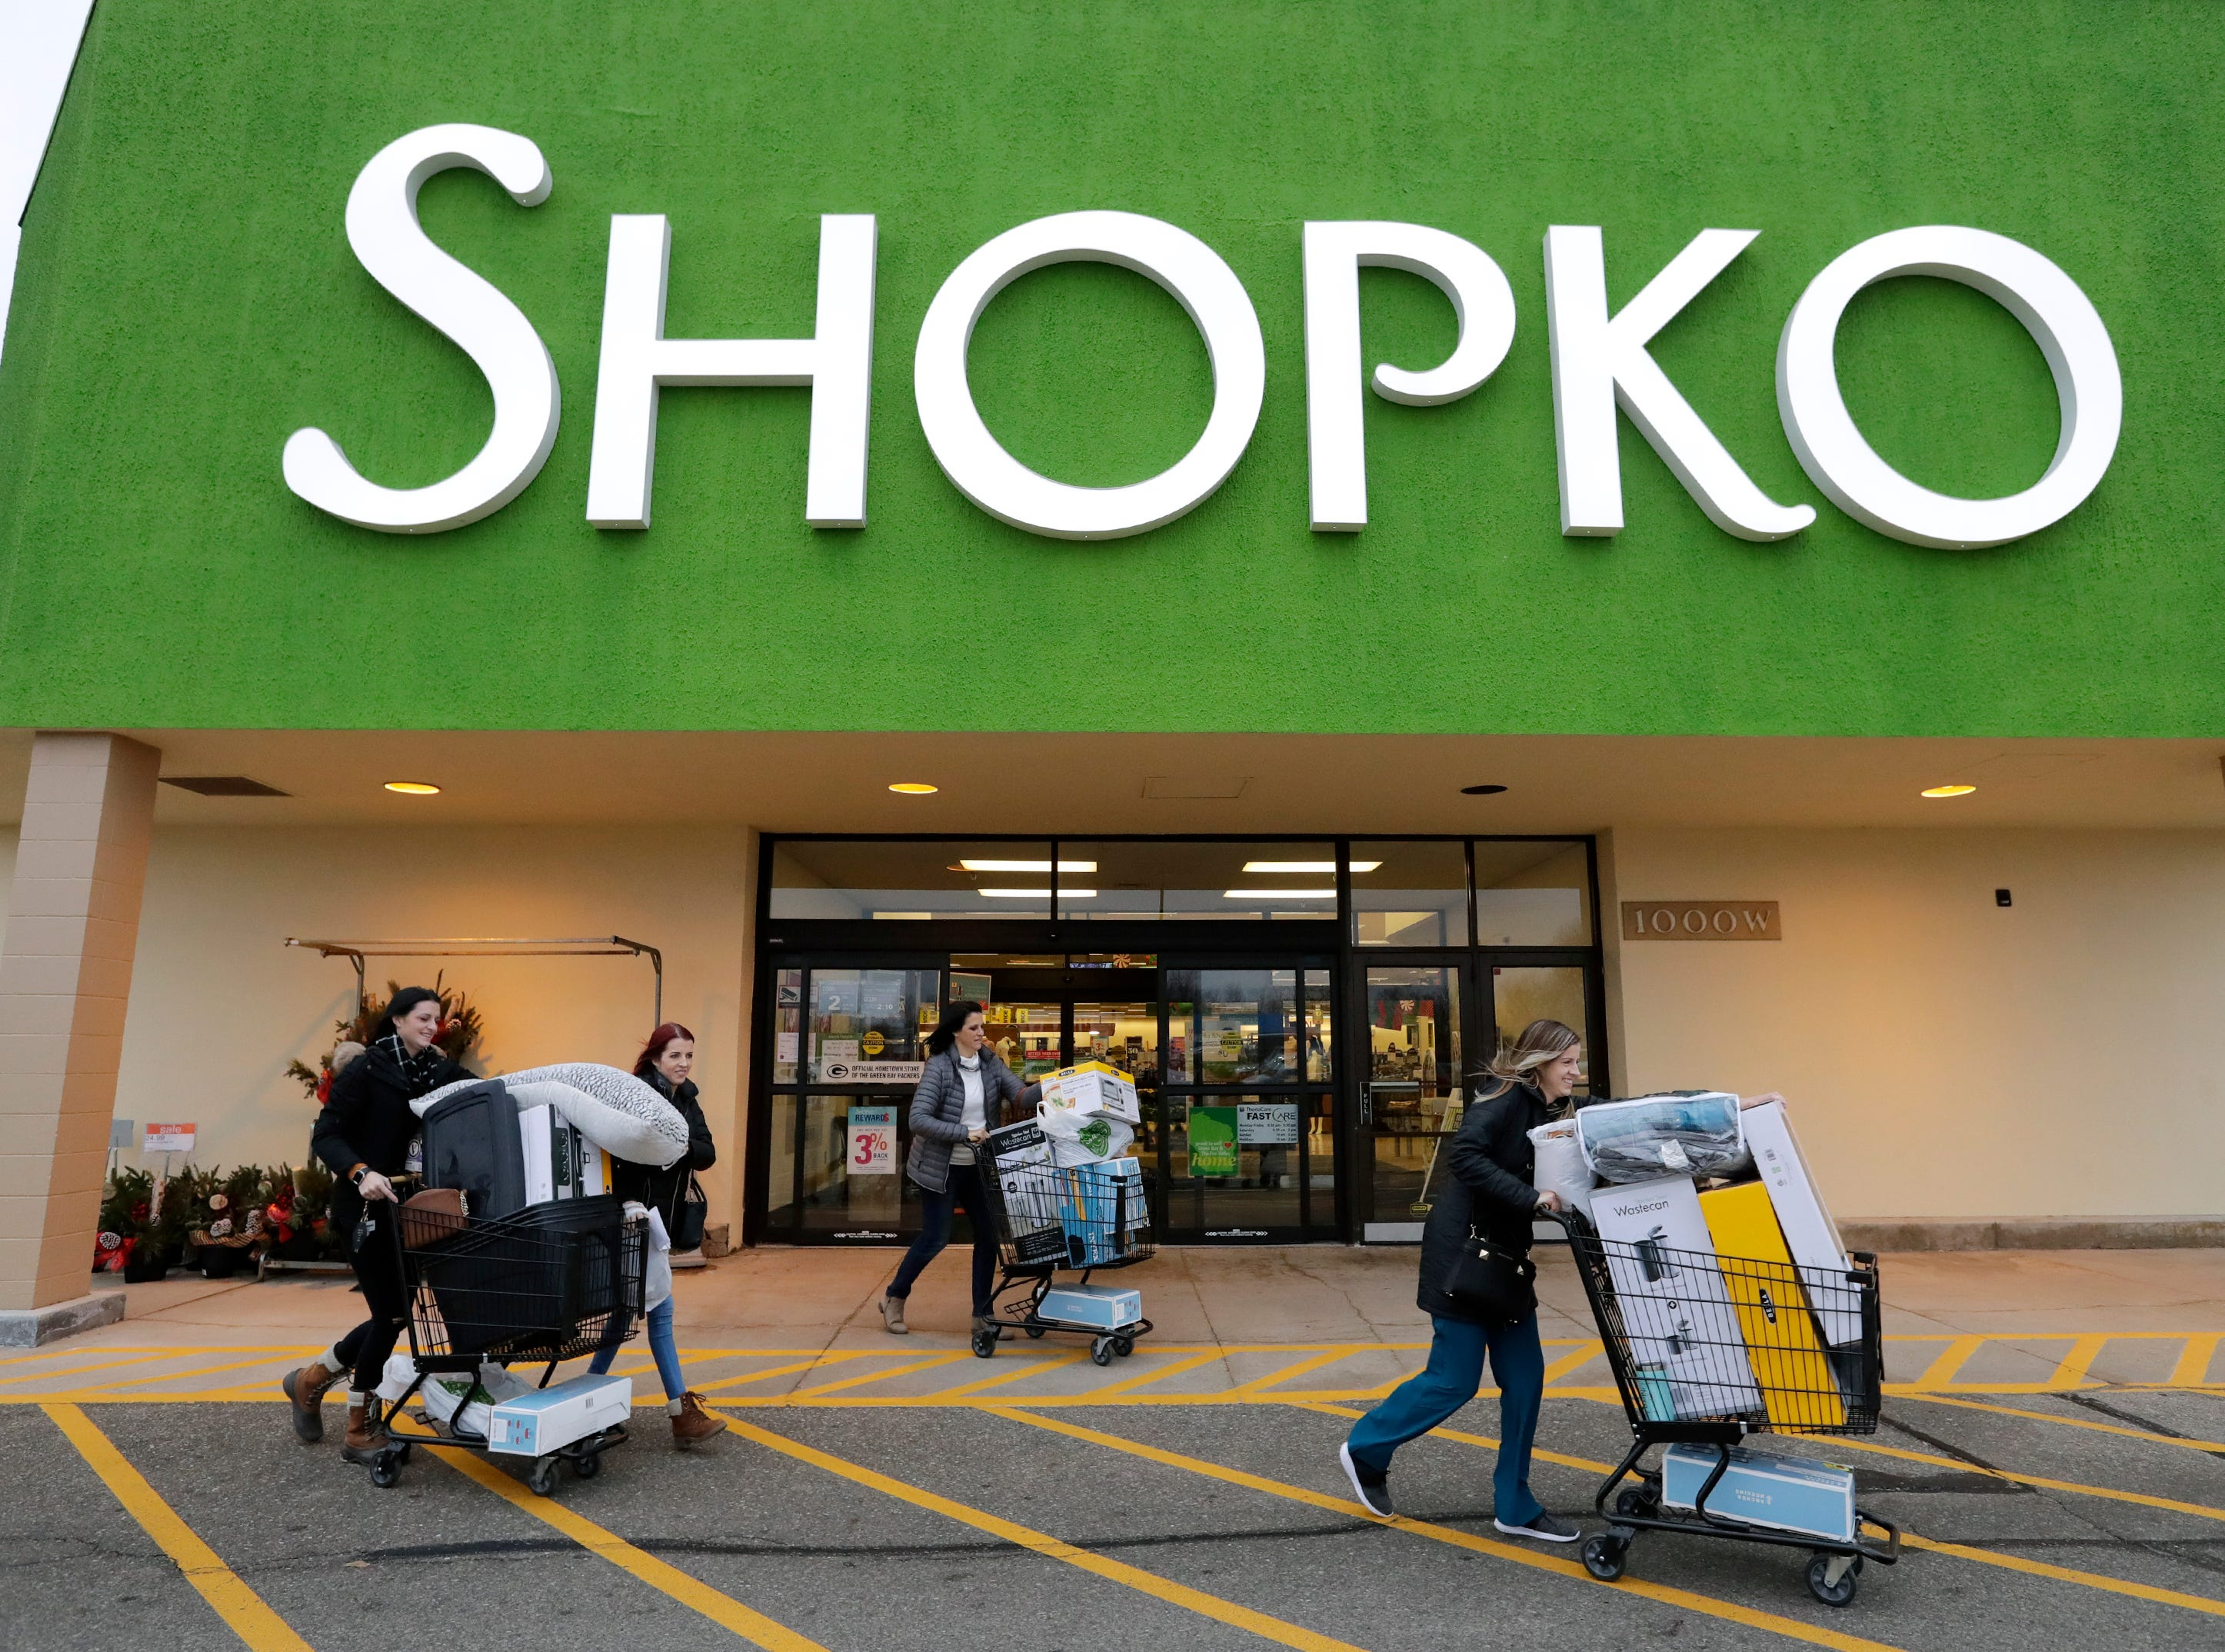 Kayla Williams, left, of Neenah is loaded down with Black Friday specials as she heads to her vehicle with her sister Kendra Miller of Appleton, mother Kelly Miller of Appleton and other sister Kiera Miller, right, of Appleton Thursday, November 22, 2018, at Shopko in Appleton, Wis. Dan Powers/USA TODAY NETWORK-Wisconsin